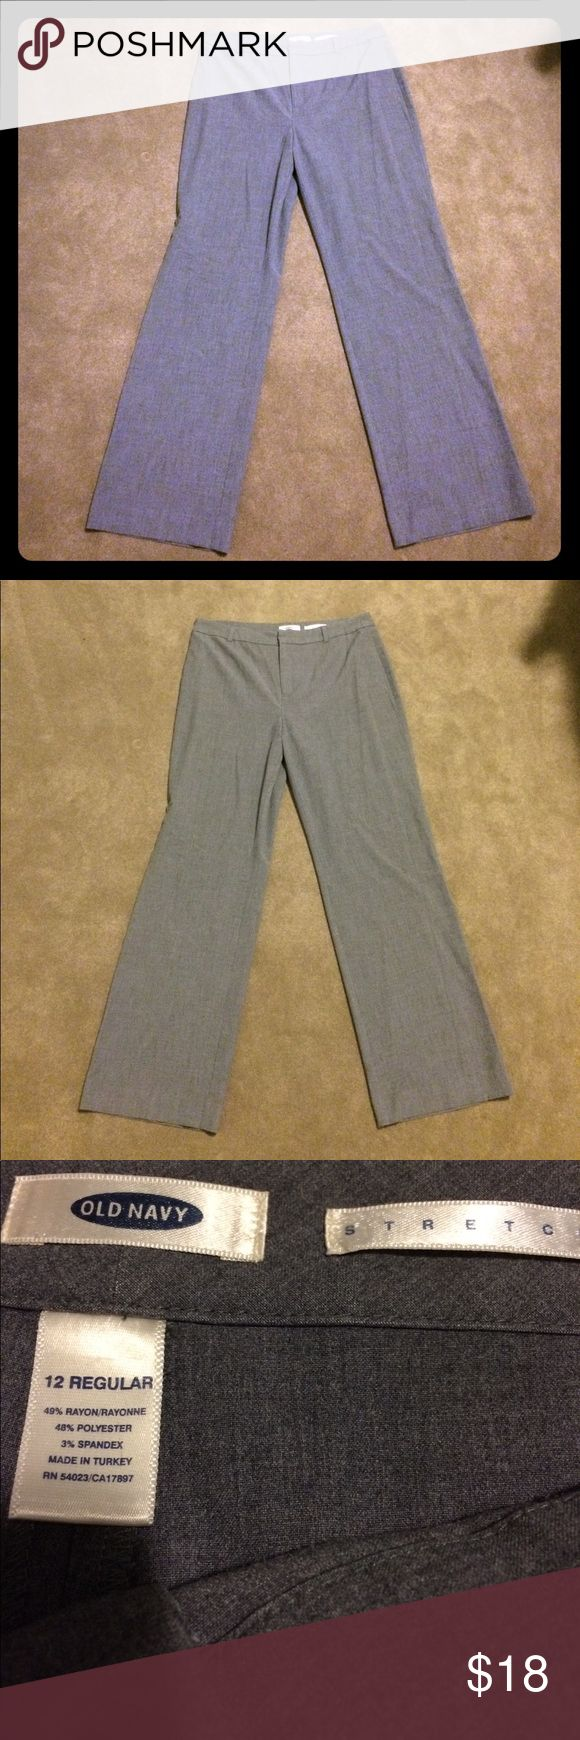 Old Navy grey stretch dress pants Make an offer! No trades. Bundle and save! Old Navy Pants Trousers